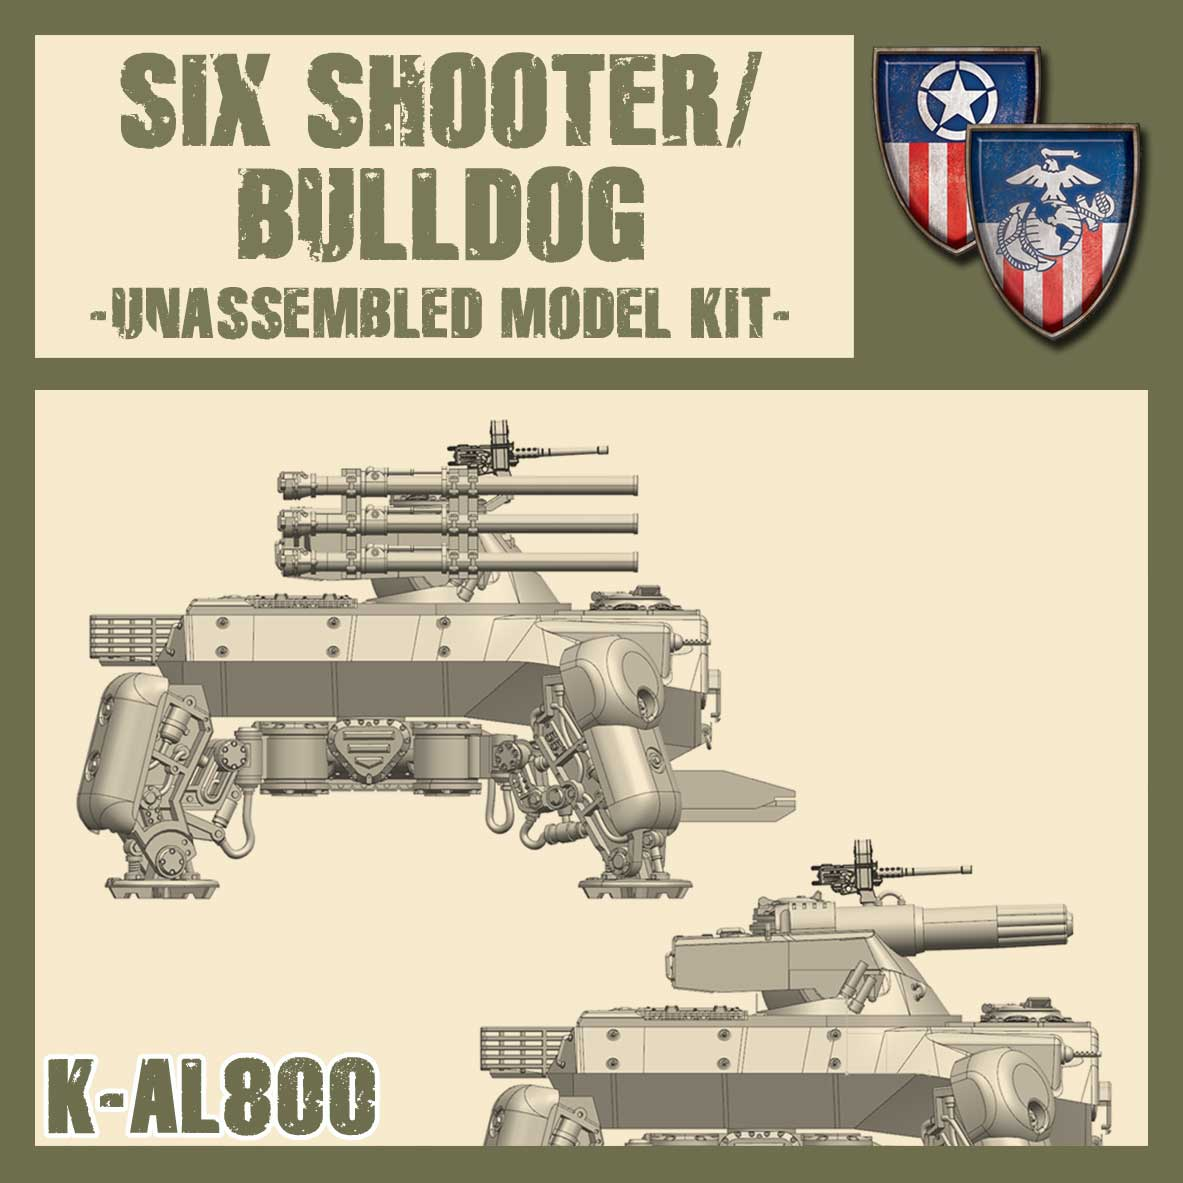 Bulldog/Six Shooter Kit